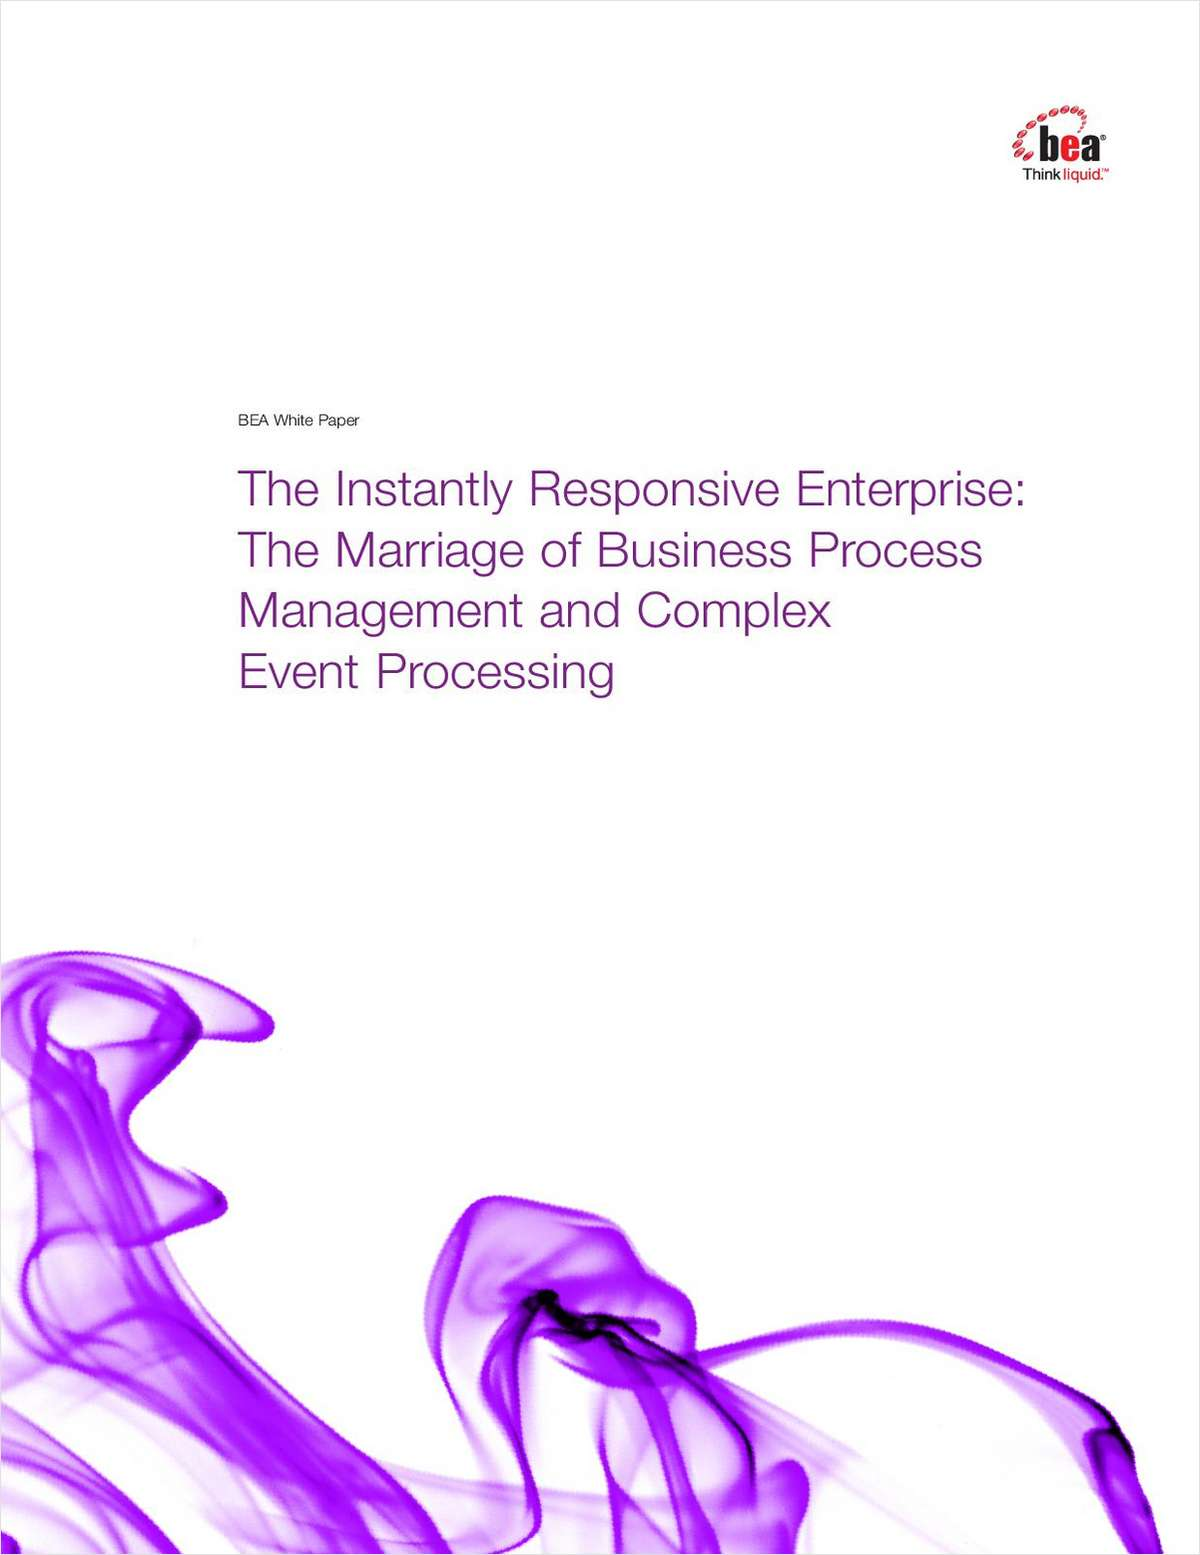 The Instantly Responsive Enterprise: The Marriage of Business Process Management and Complex Event Processing